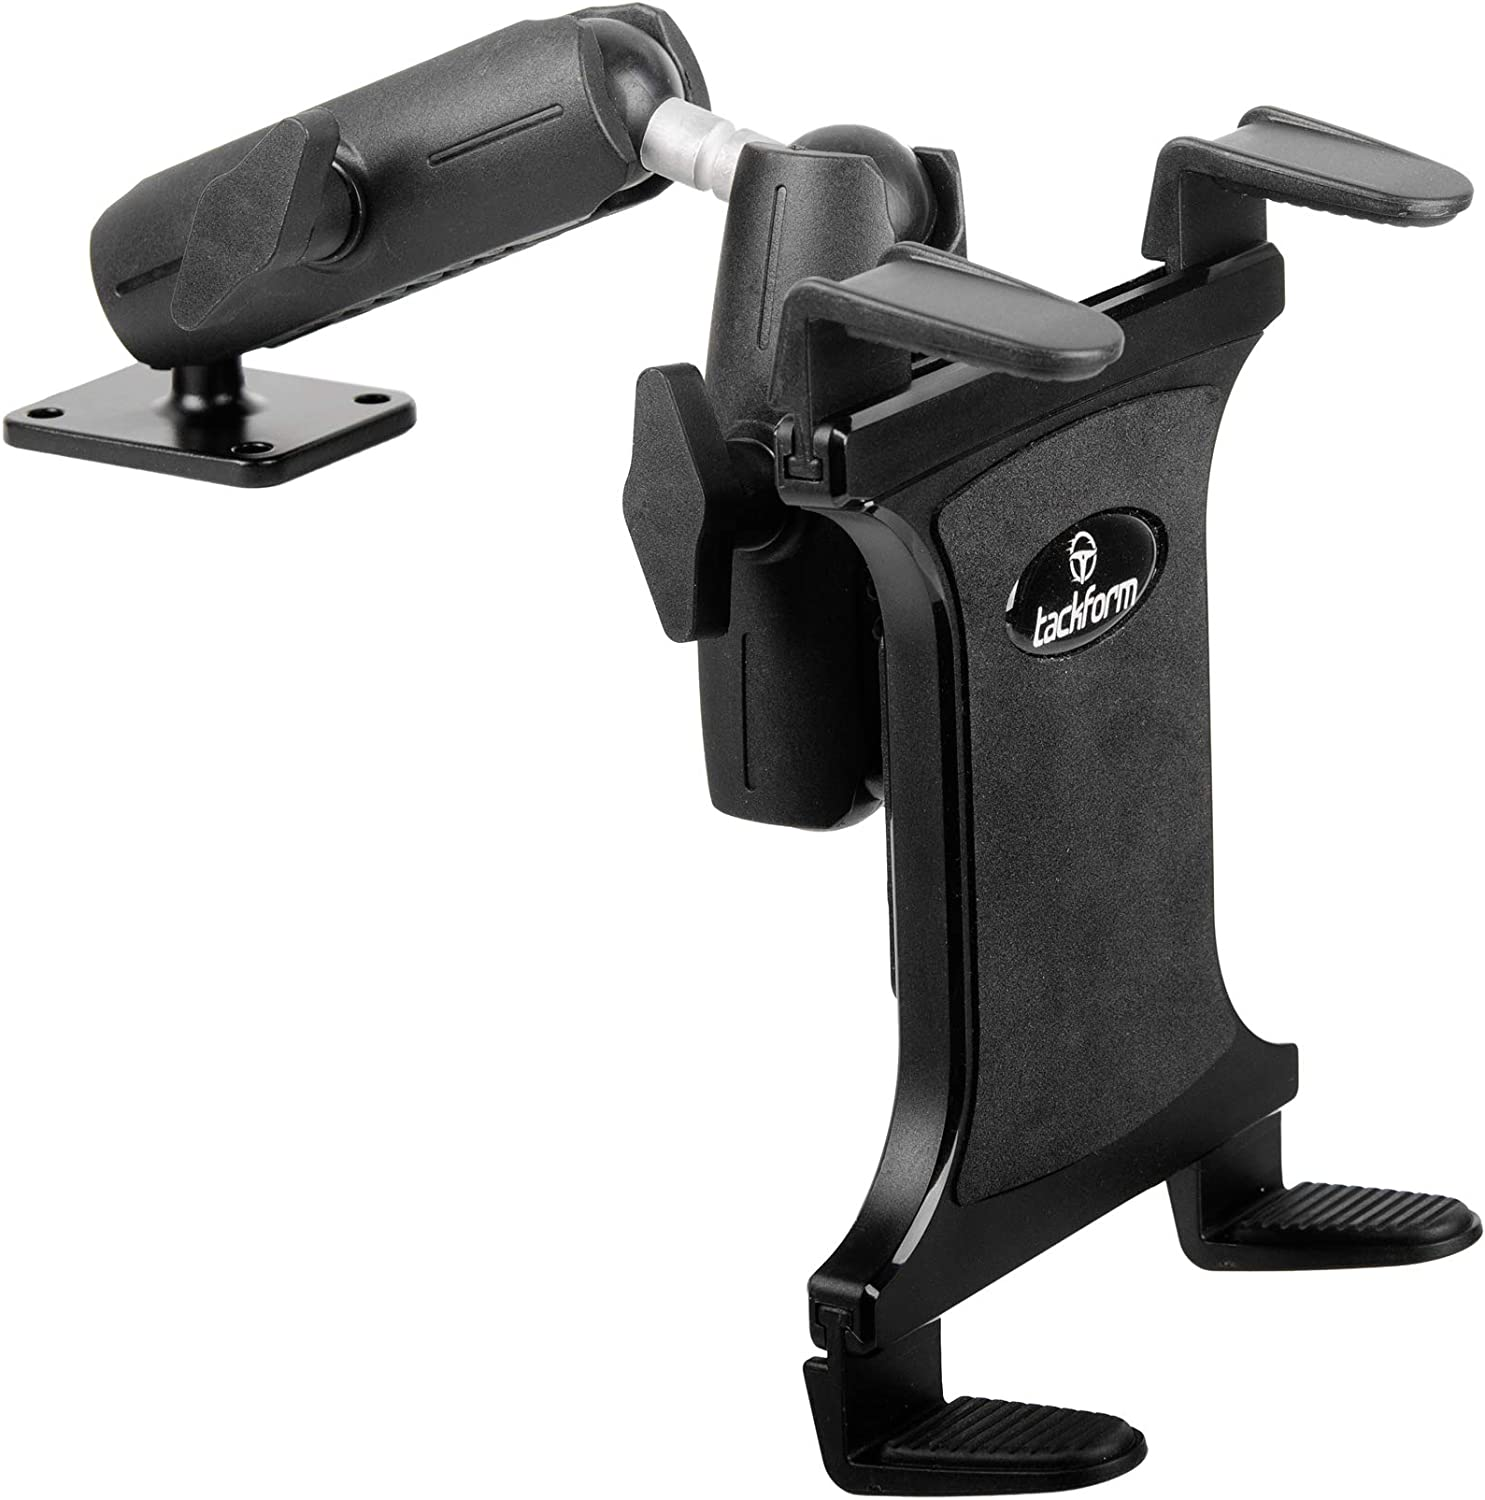 iPad Holder for Wall or Truck Tall Drill Base Tablet Mount Galaxy S Surface Pro /& Switch ELD Mount for Devices Including iPad Mini IPad Pro 12.9 Enterprise Series - 10.5 Reach TACKFORM